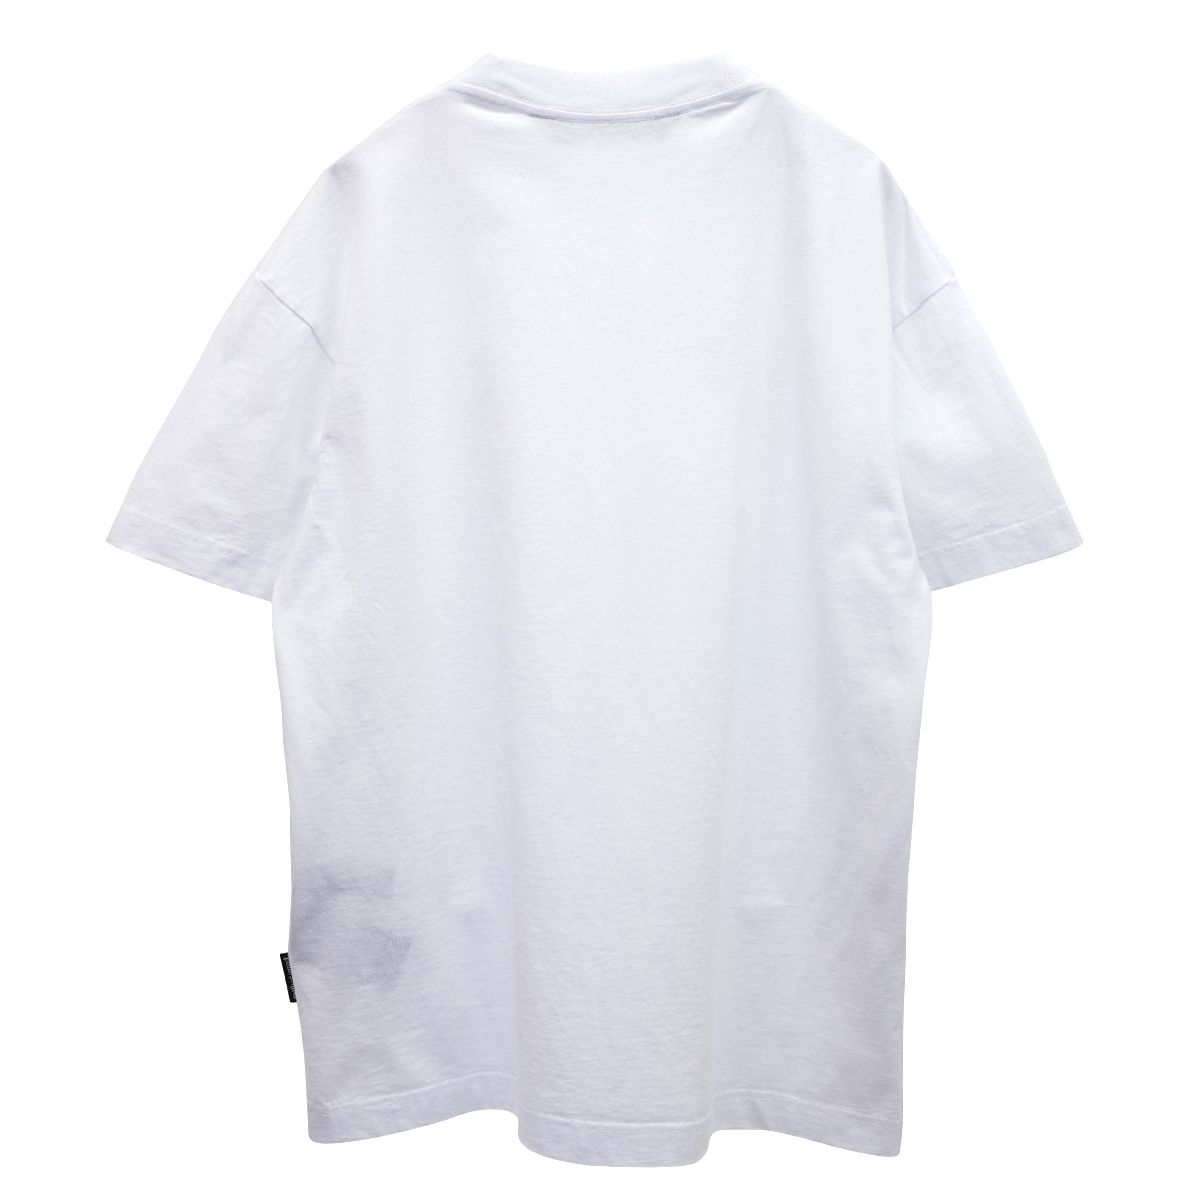 Palm Angels STATEMENT LOGO TEE / 0110 : WHITE BLACK